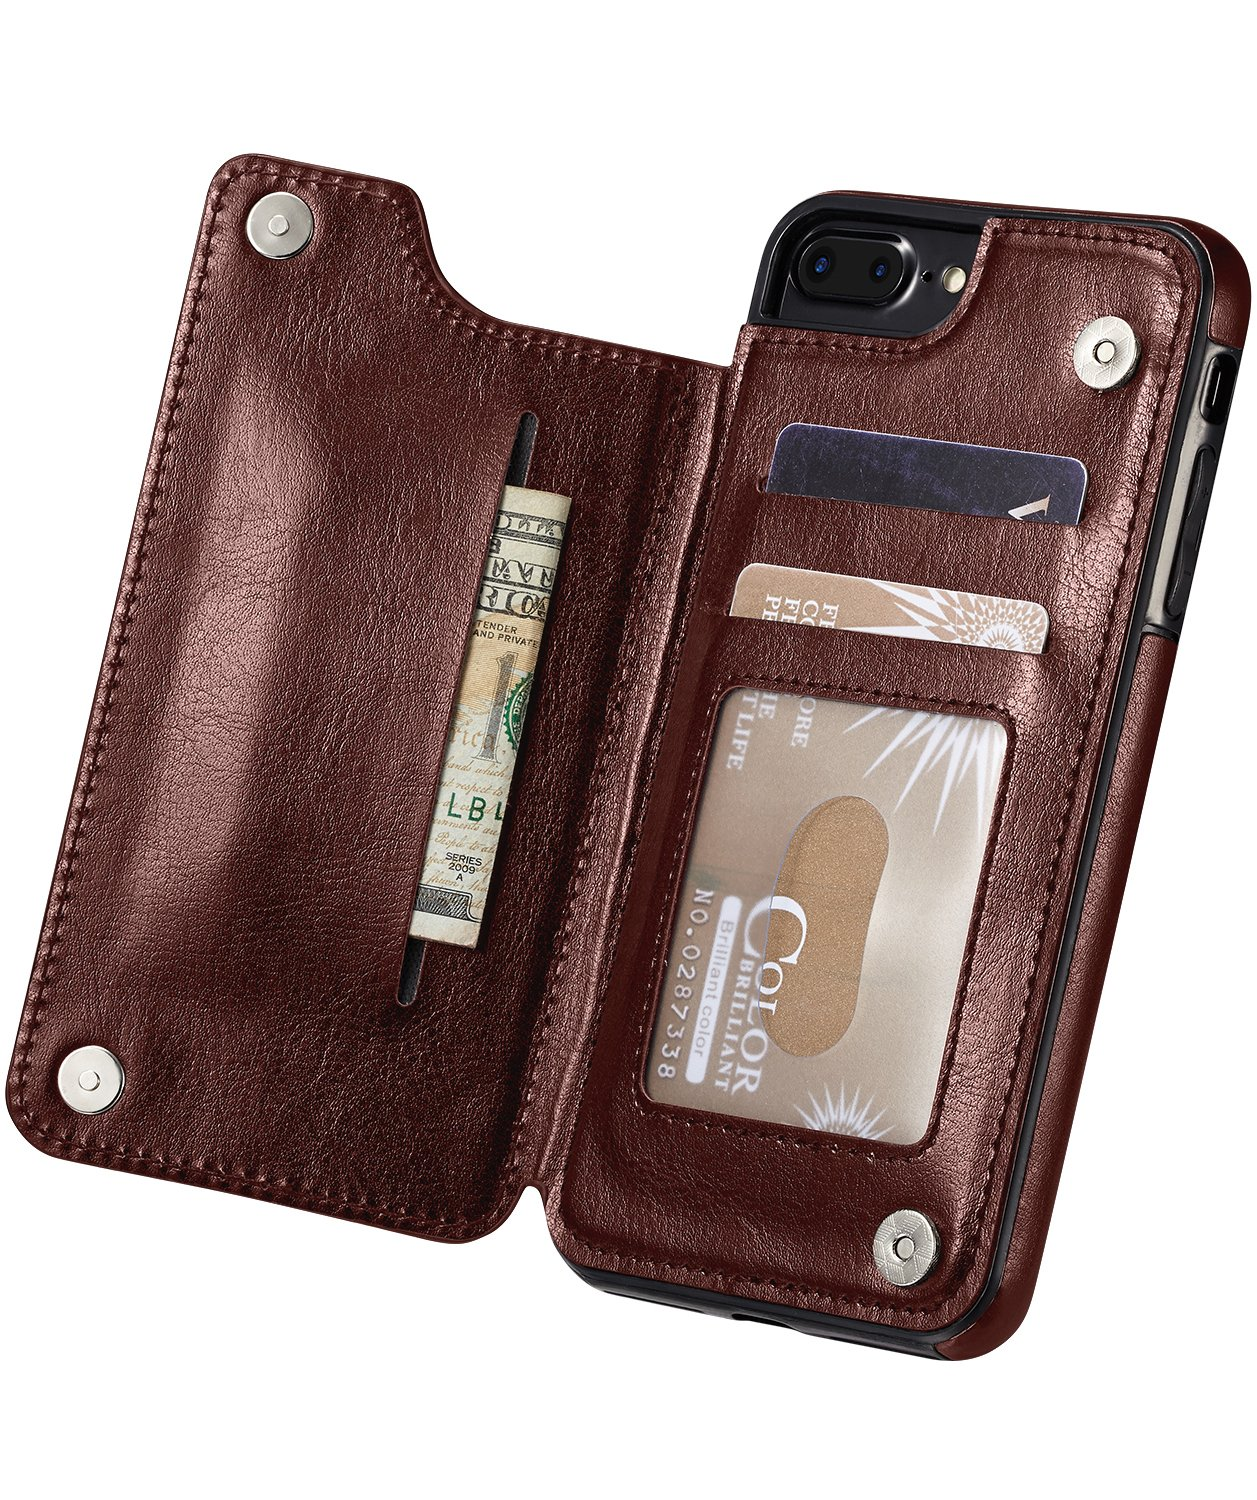 for iPhone 7 Plus Case, iPhone 8/8s Plus Case, Marval.P Slim Premium Leather iPhone Wallet Case Cover Pouch Card Slots Shockproof Folio Flip Protective Defender Shell Magnetic Clasp Kickstand Holder